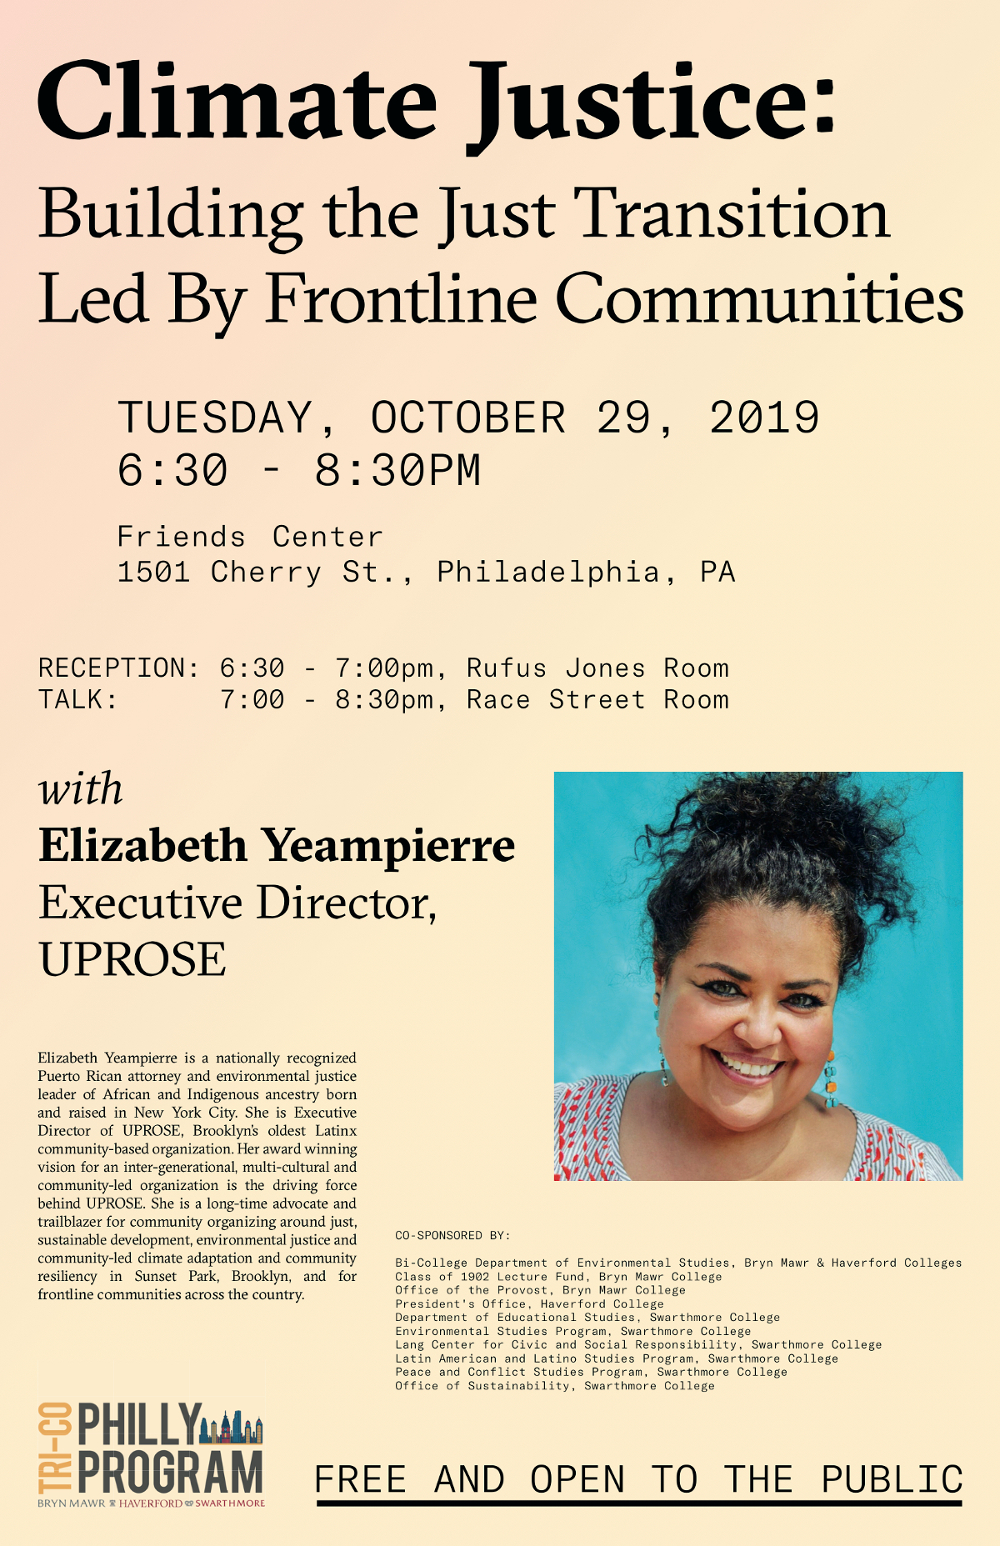 Flyer for talk by Elizabeth Yeampierre on Climate Justice at Friends Center, October 29, 2019